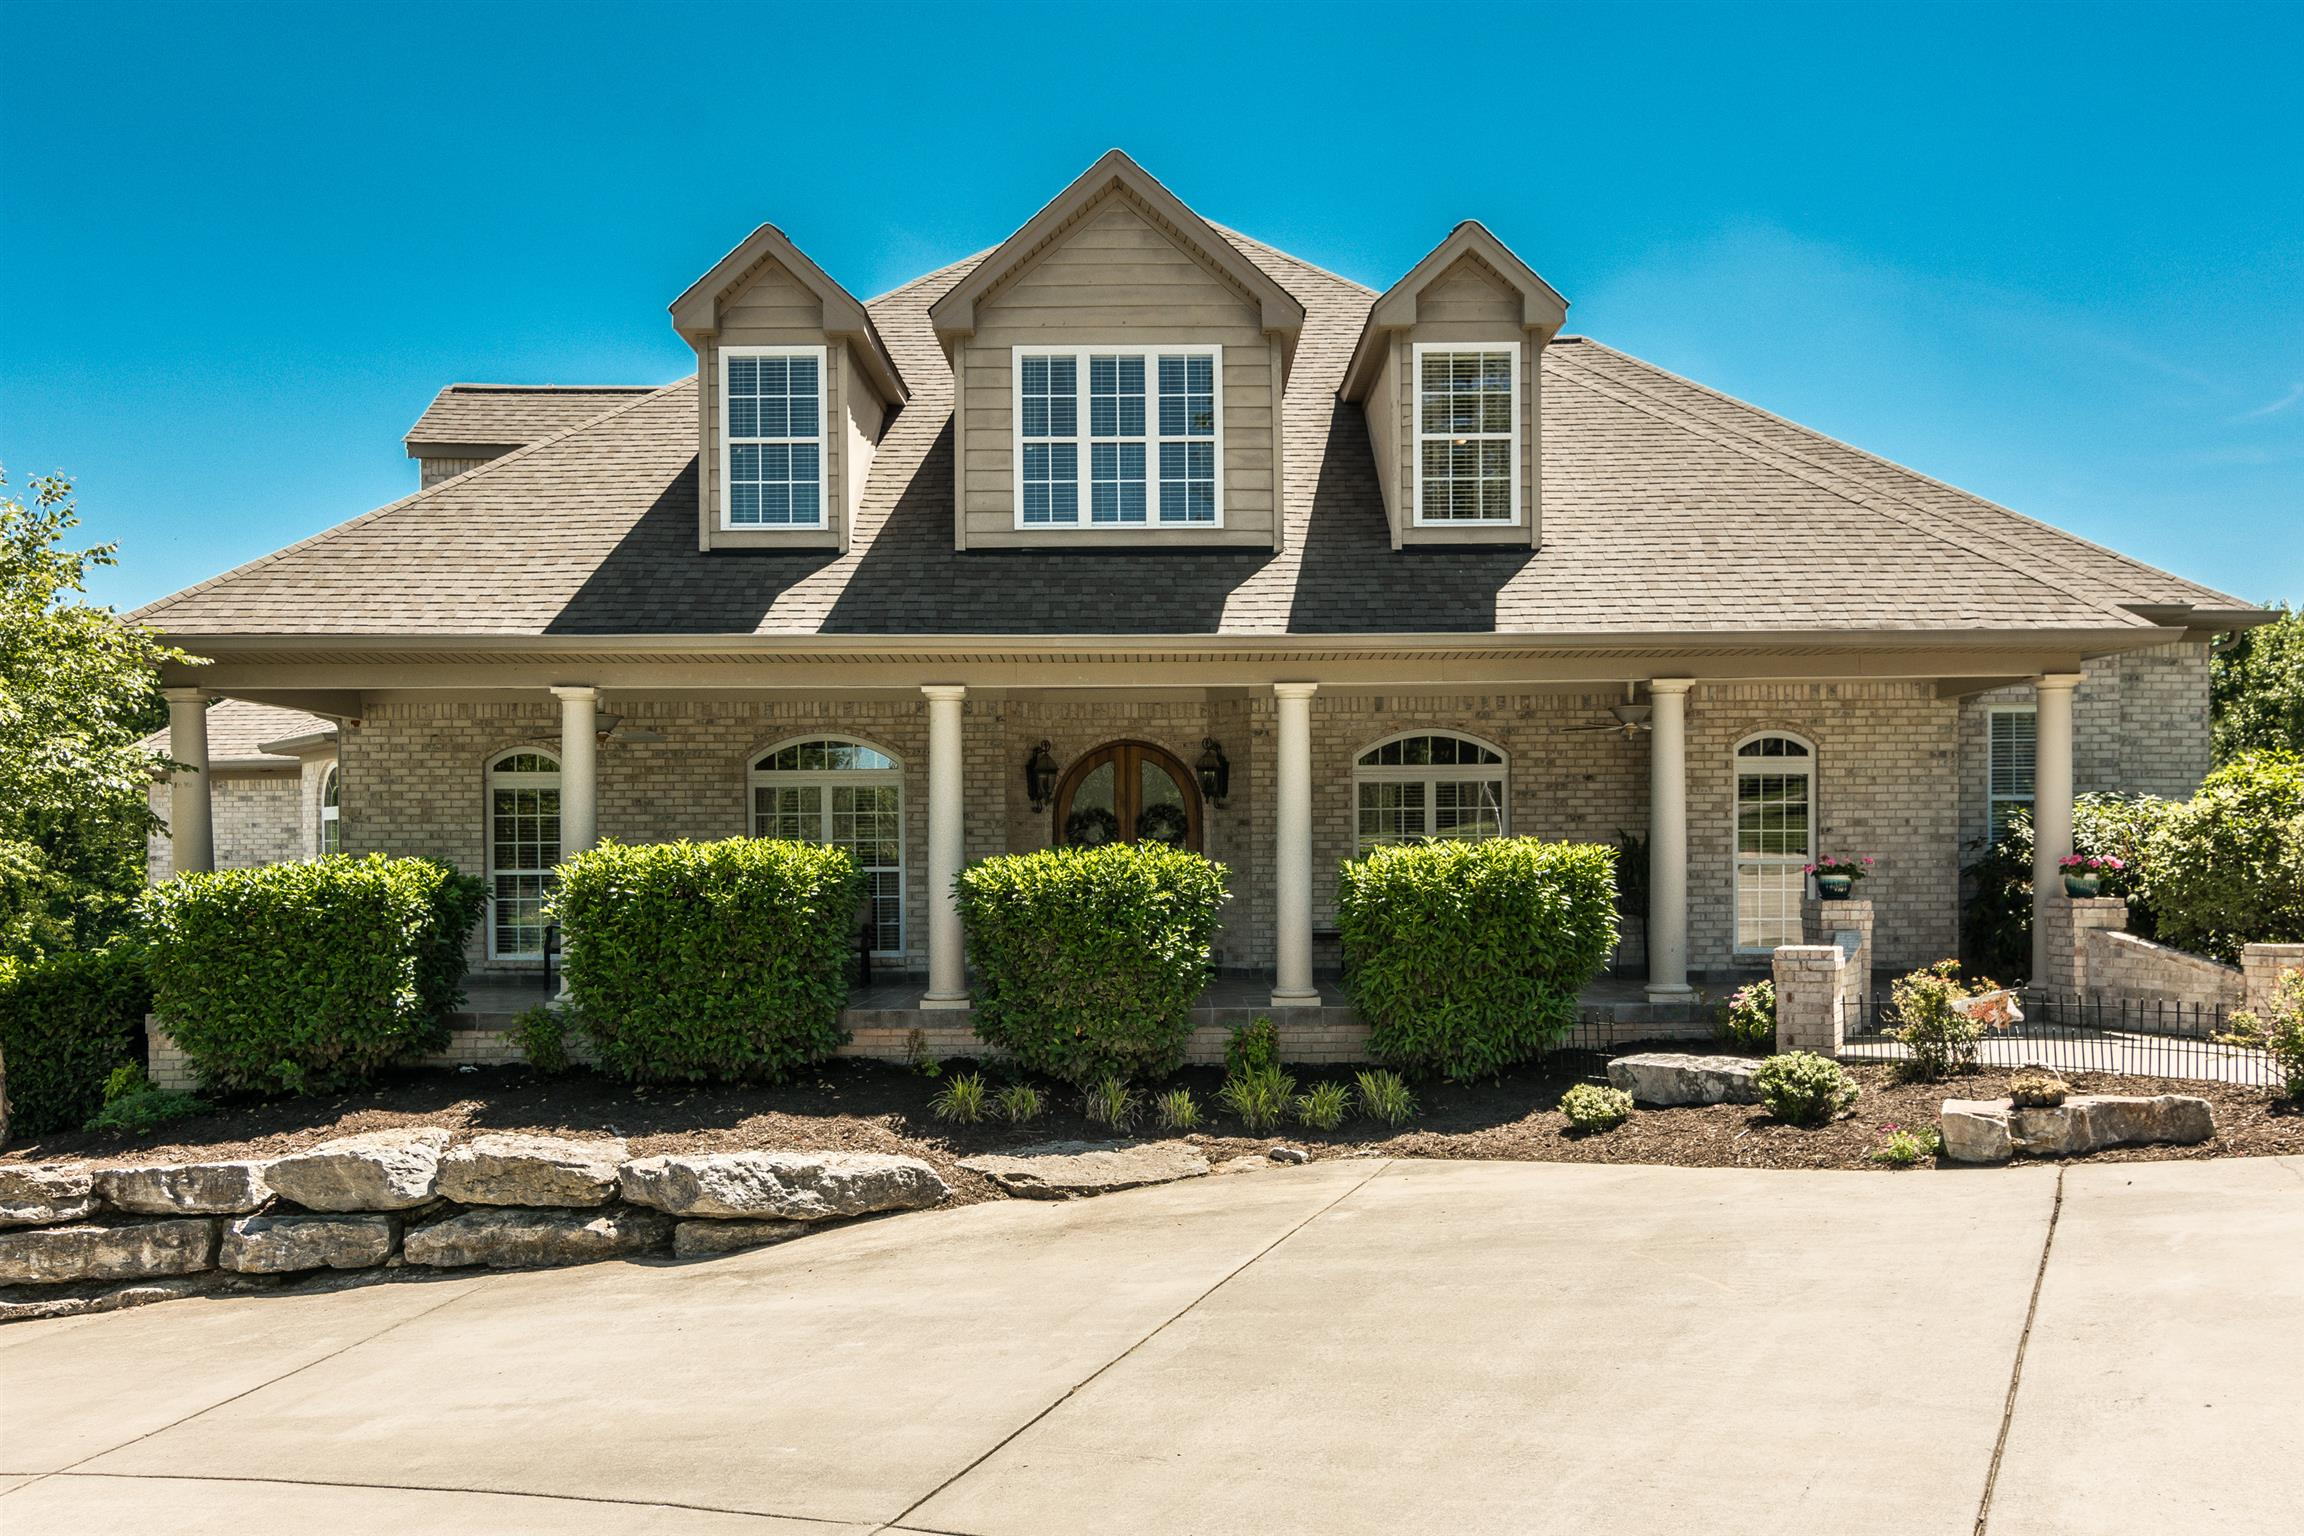 309 Hunters Lane, Hendersonville, TN 37075 - Hendersonville, TN real estate listing